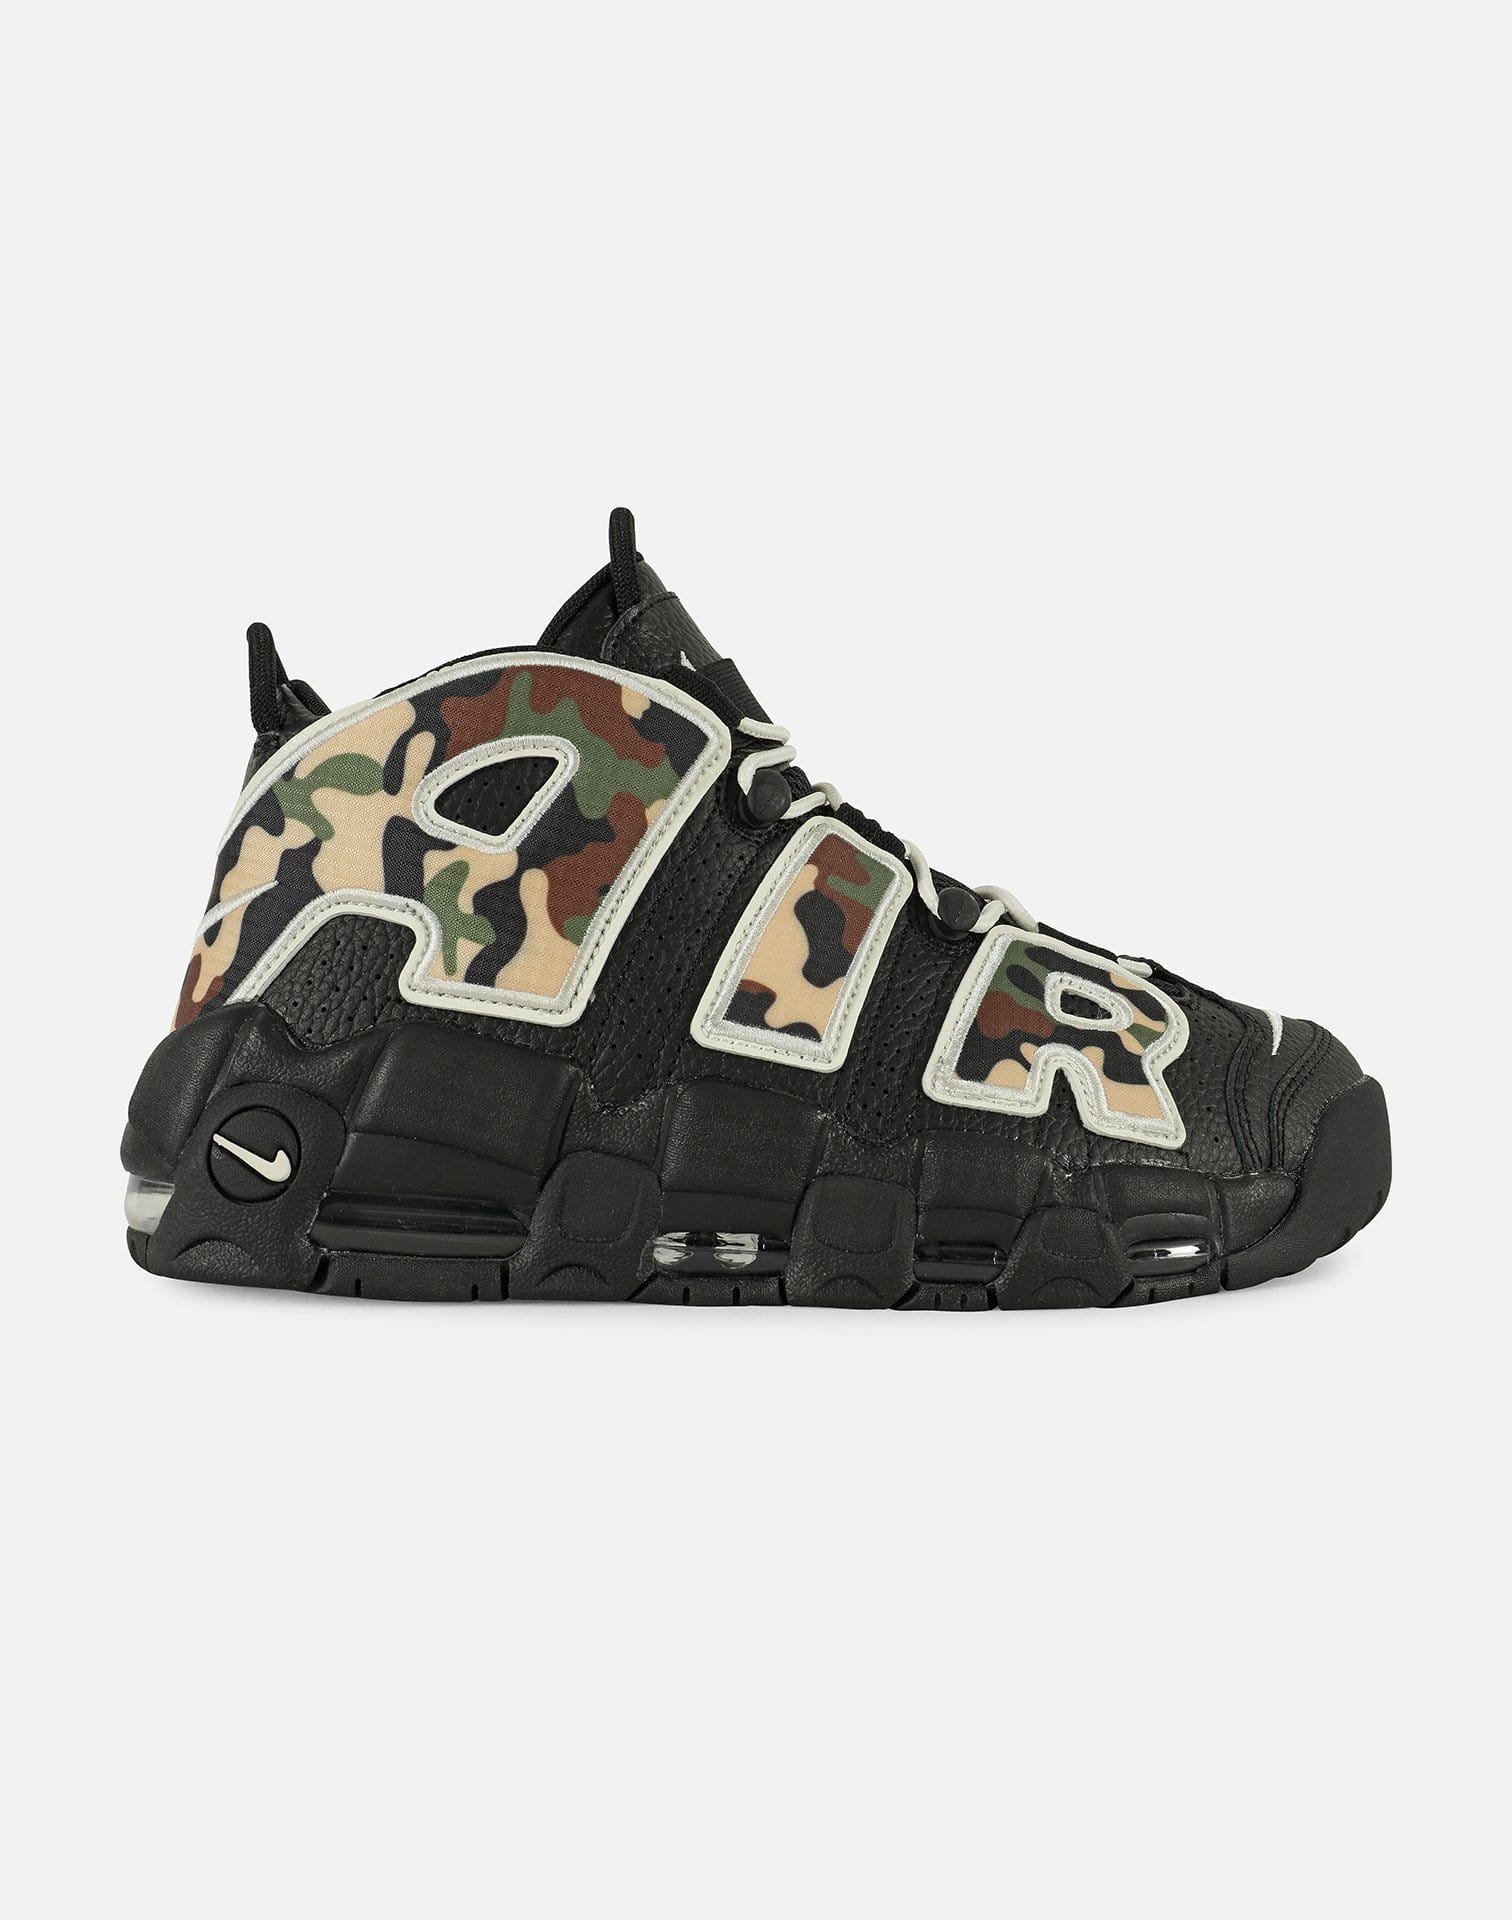 AIR MORE UPTEMPO '96 – DTLR